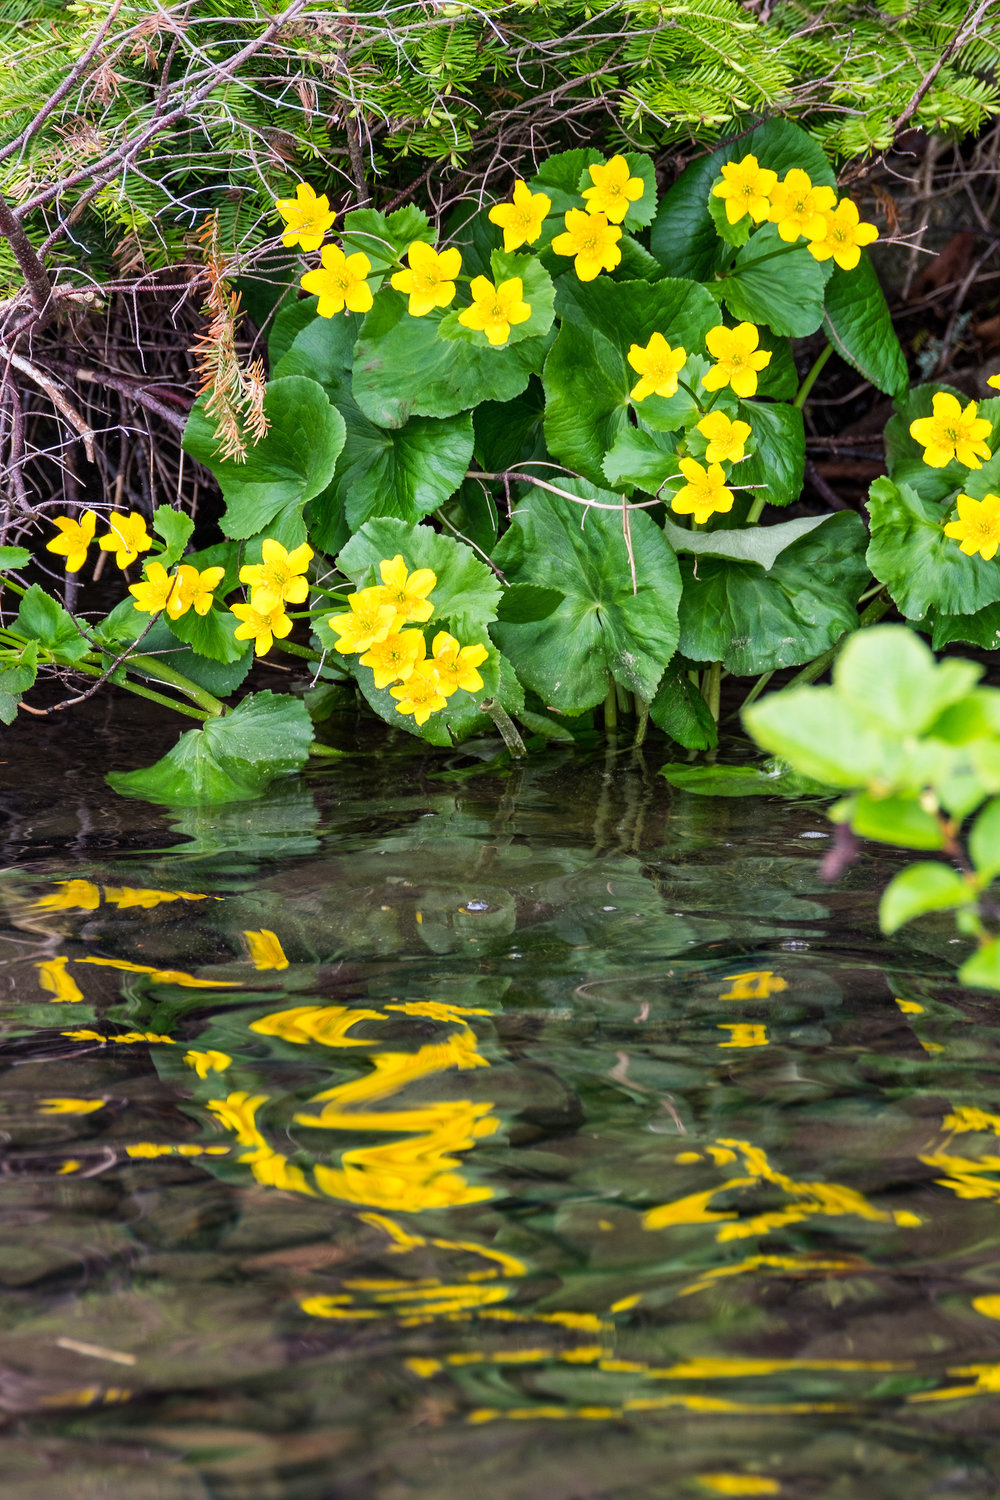 Yellow flowers in Isle Royale National Park in Michigan